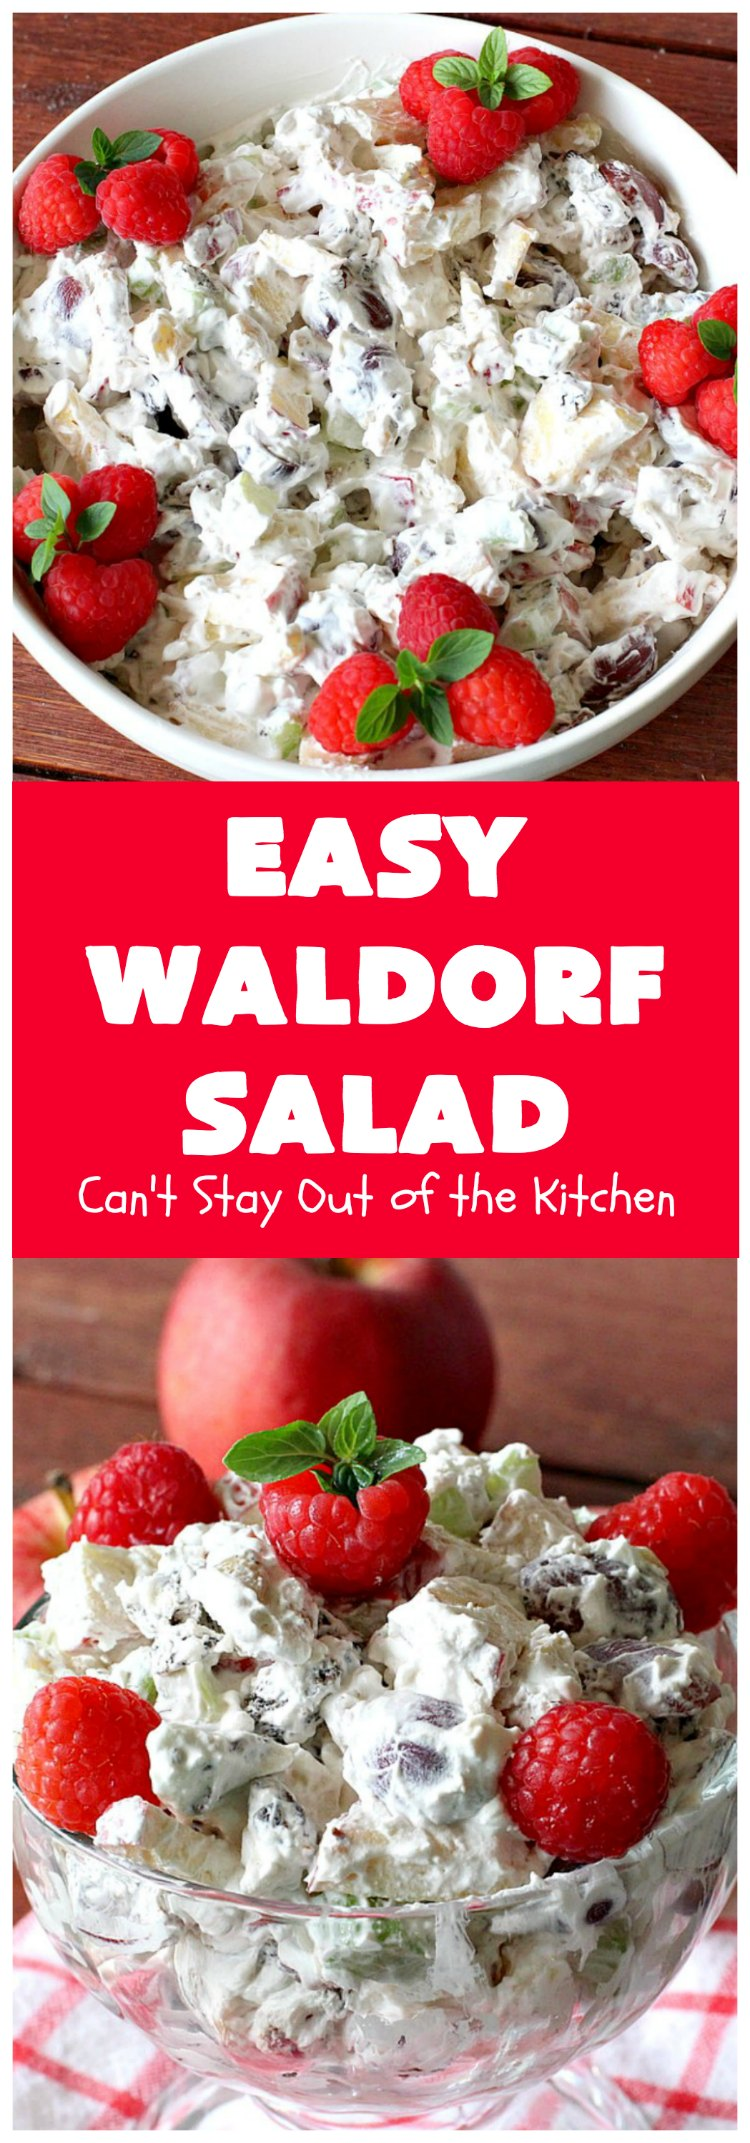 Easy Waldorf Salad   Can't Stay Out of the Kitchen   this luscious #GooseberryPatch #recipe uses #apples, #raisins, #grapes, #celery & #walnuts. This is the perfect #FruitSalad for #Christmas & other #holiday menus. It can be prepared in under 10 minutes. #salad #WaldorfSalad #EasyWaldorfSalad #GlutenFree #HolidaySideDish